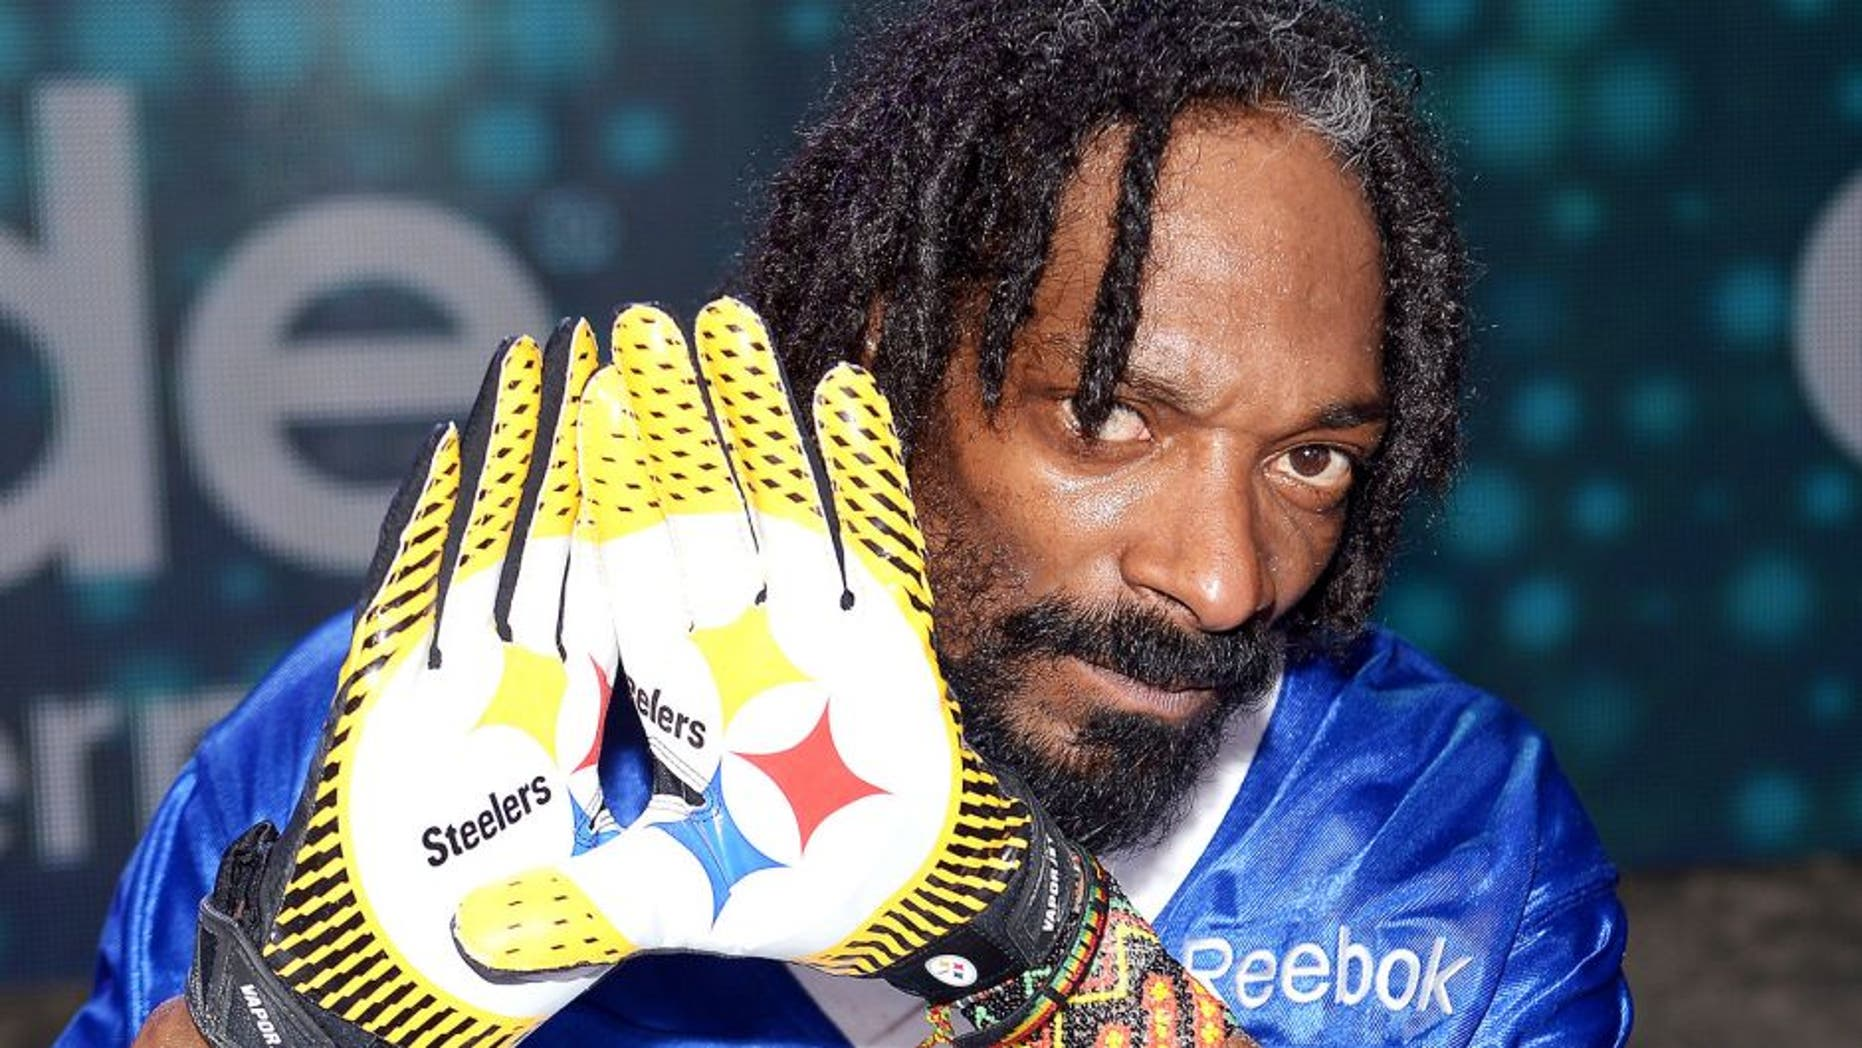 NEW ORLEANS, LA - FEBRUARY 02: Rapper Snoop Dogg attends DIRECTV'S Seventh Annual Celebrity Beach Bowl at DTV SuperFan Stadium at Mardi Gras World on February 2, 2013 in New Orleans, Louisiana. (Photo by Michael Loccisano/Getty Images For DirecTV)